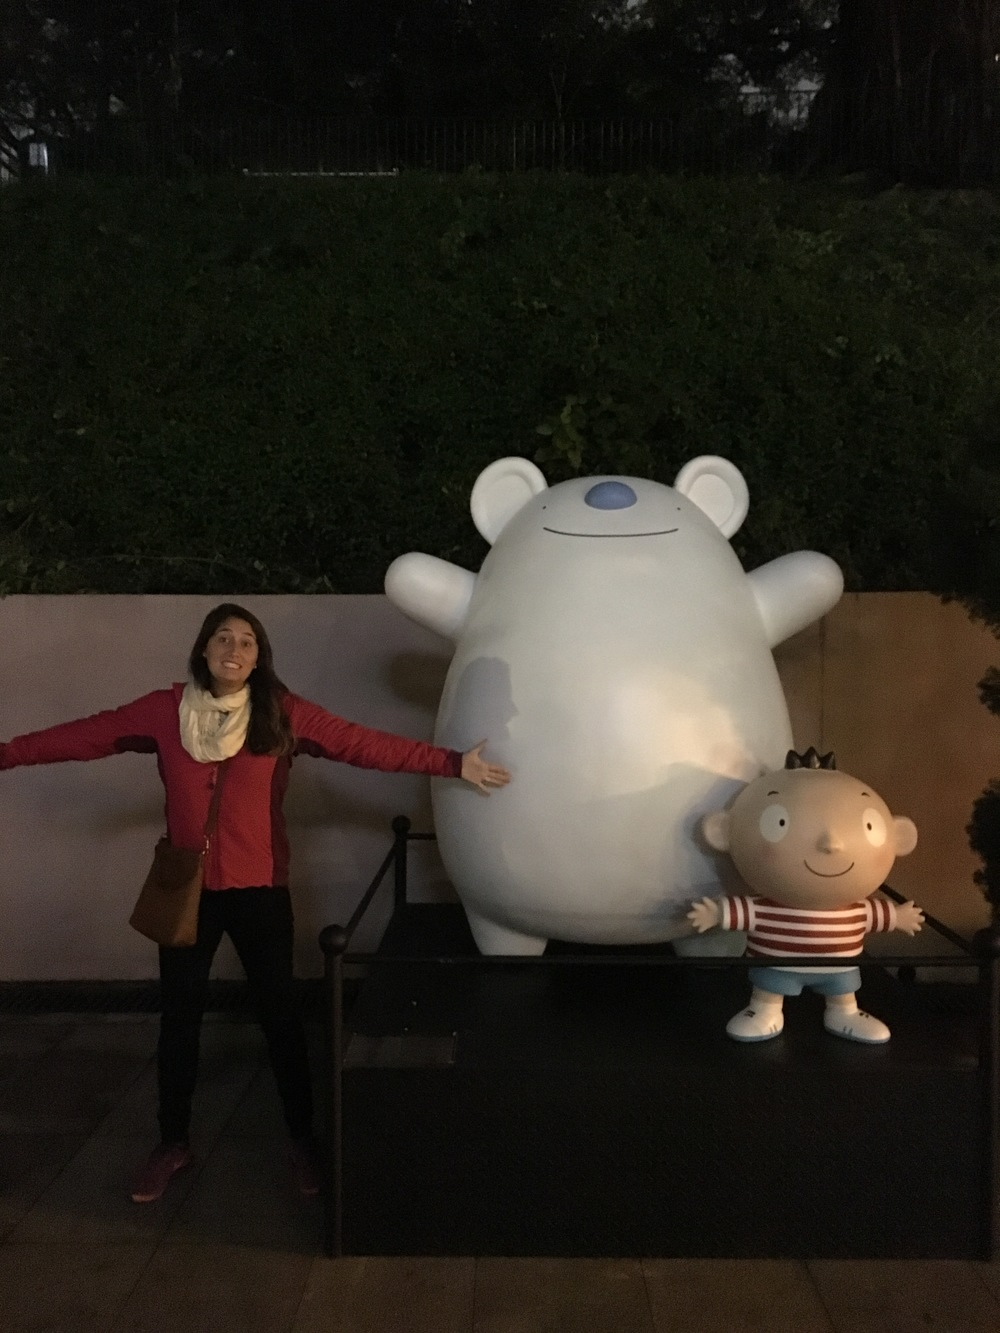 We found these funny characters in a park because Hong Kong